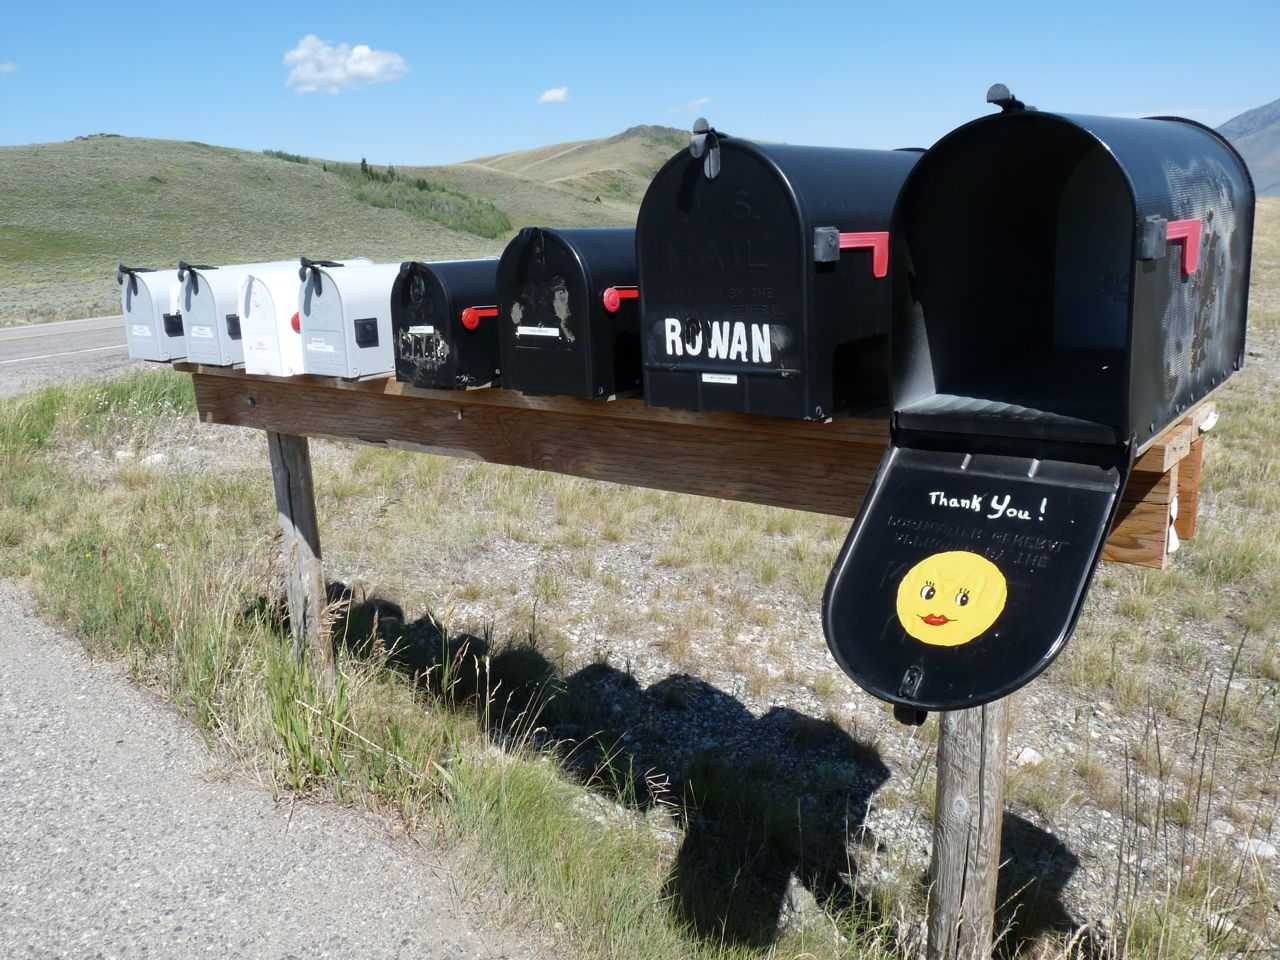 Mailboxes in rural Southwestern Montana